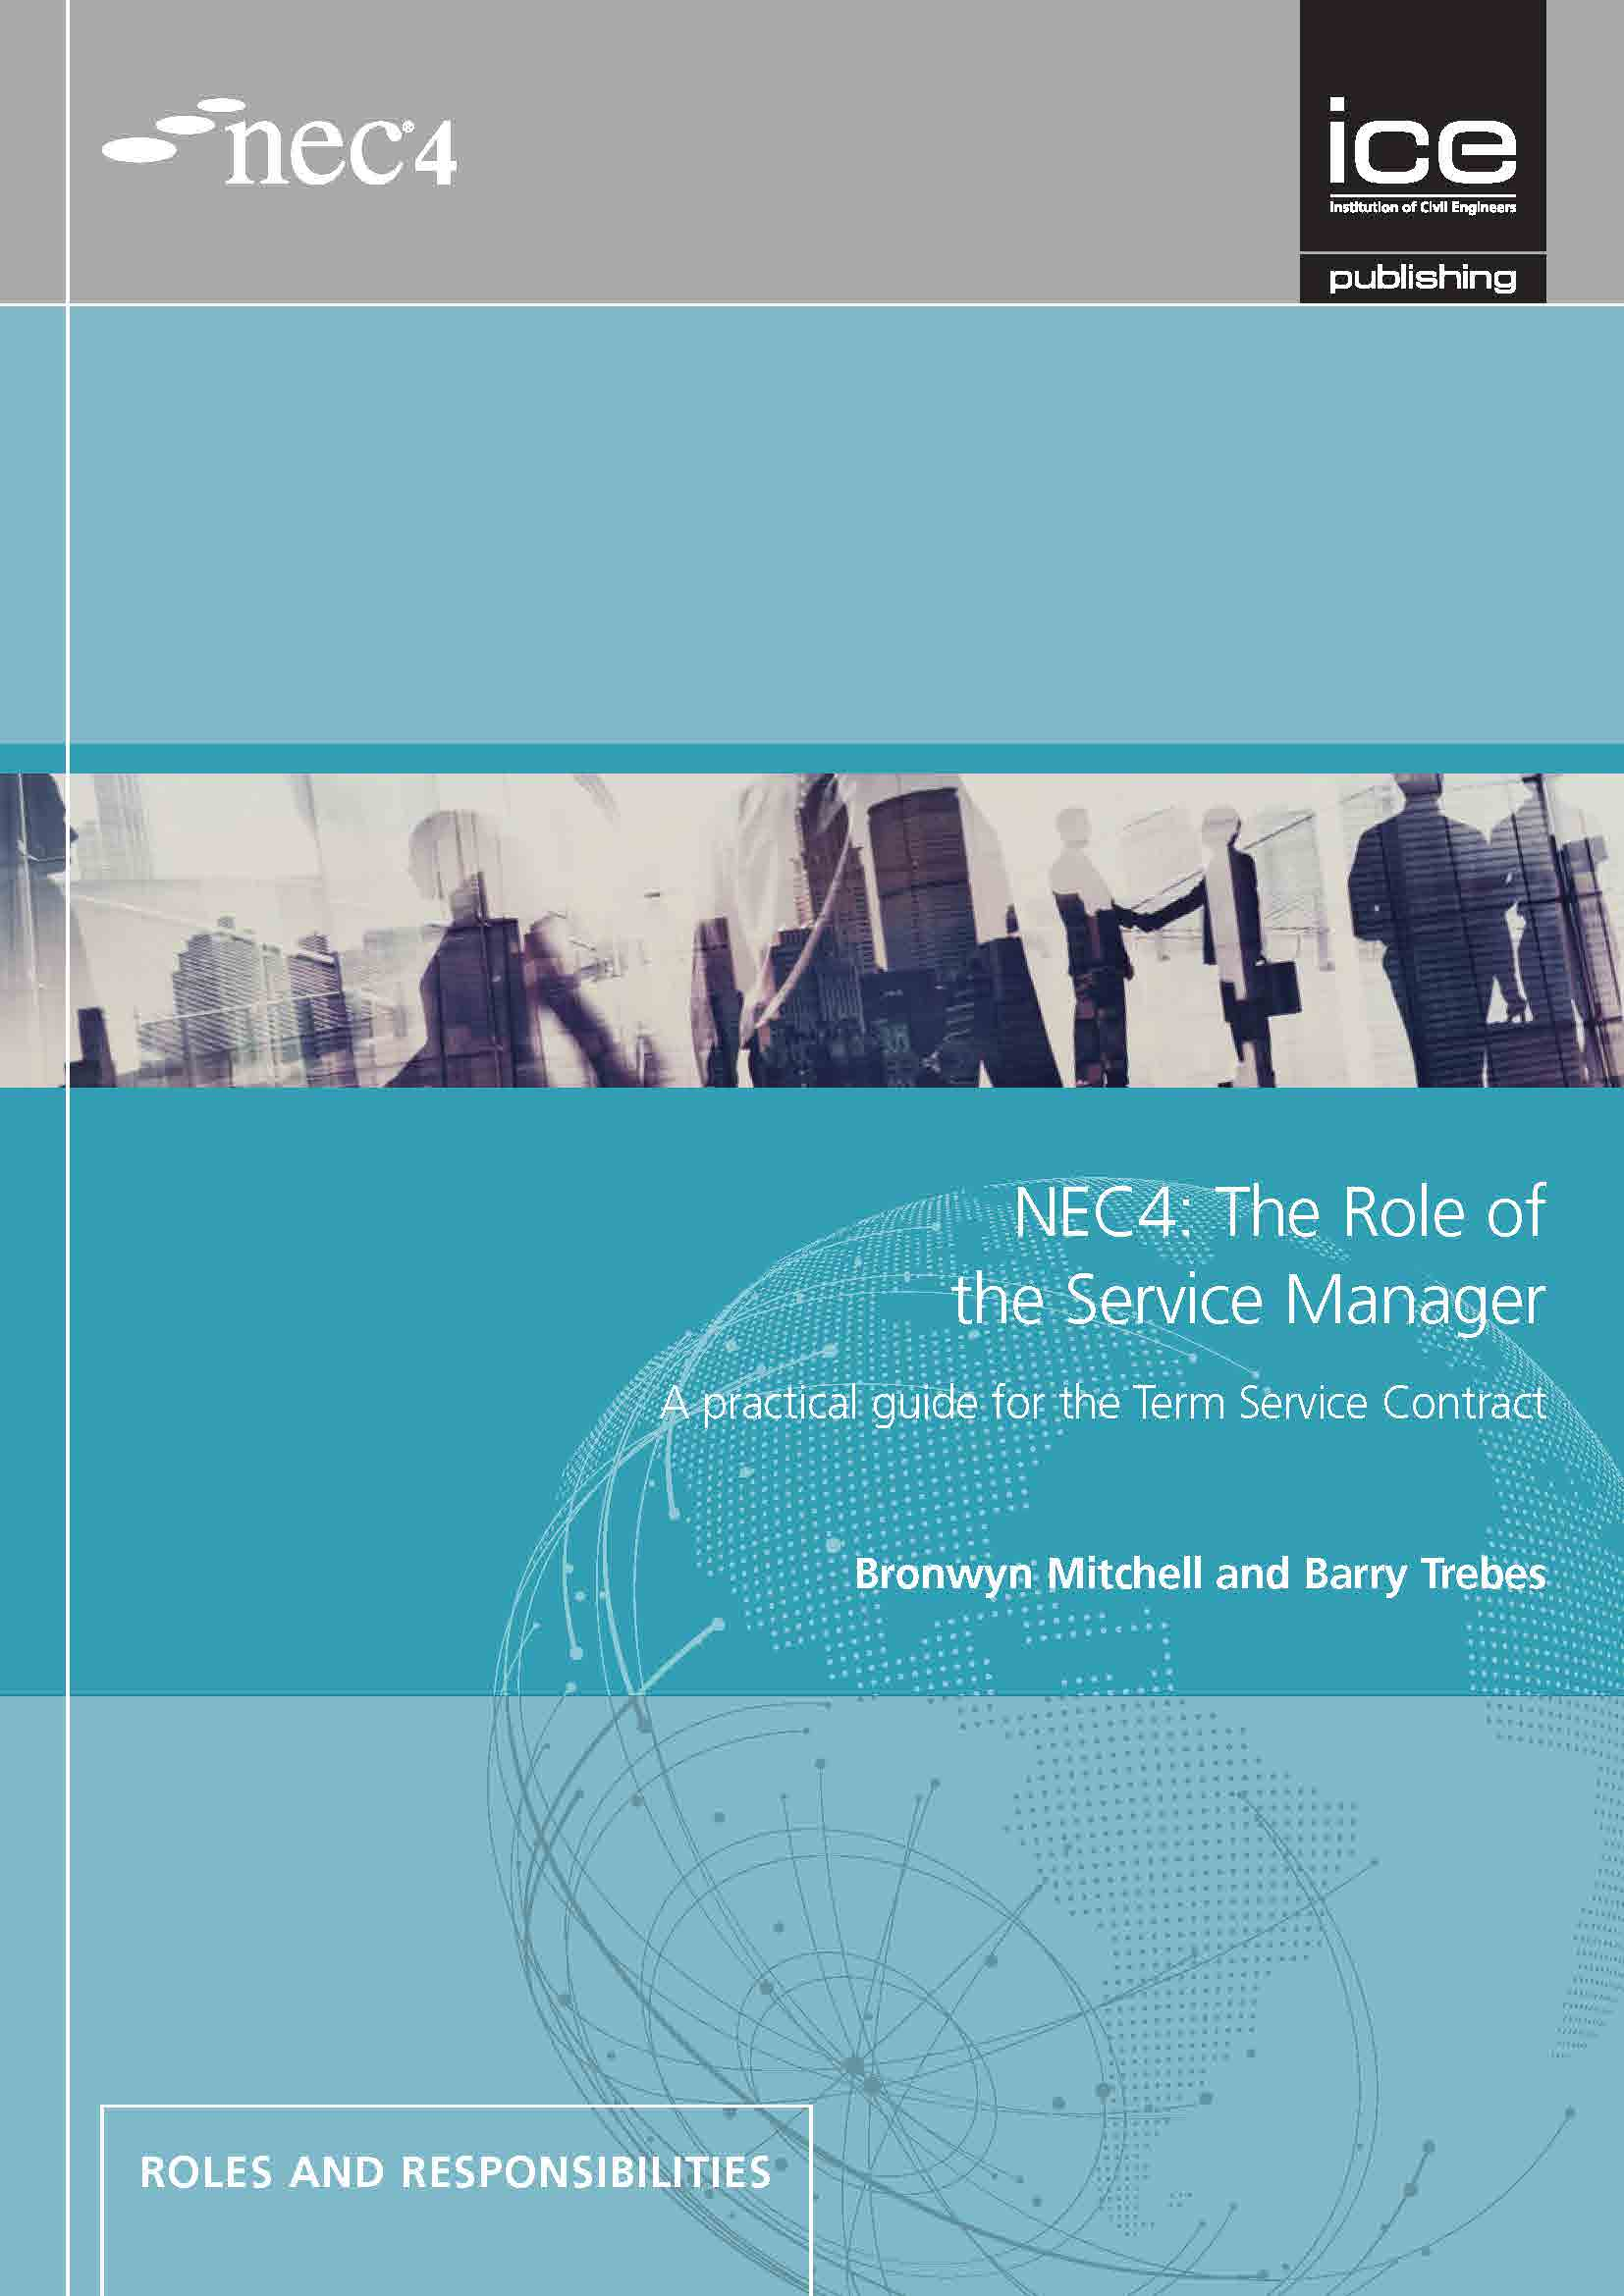 NEC4: The Role of the Service Manager